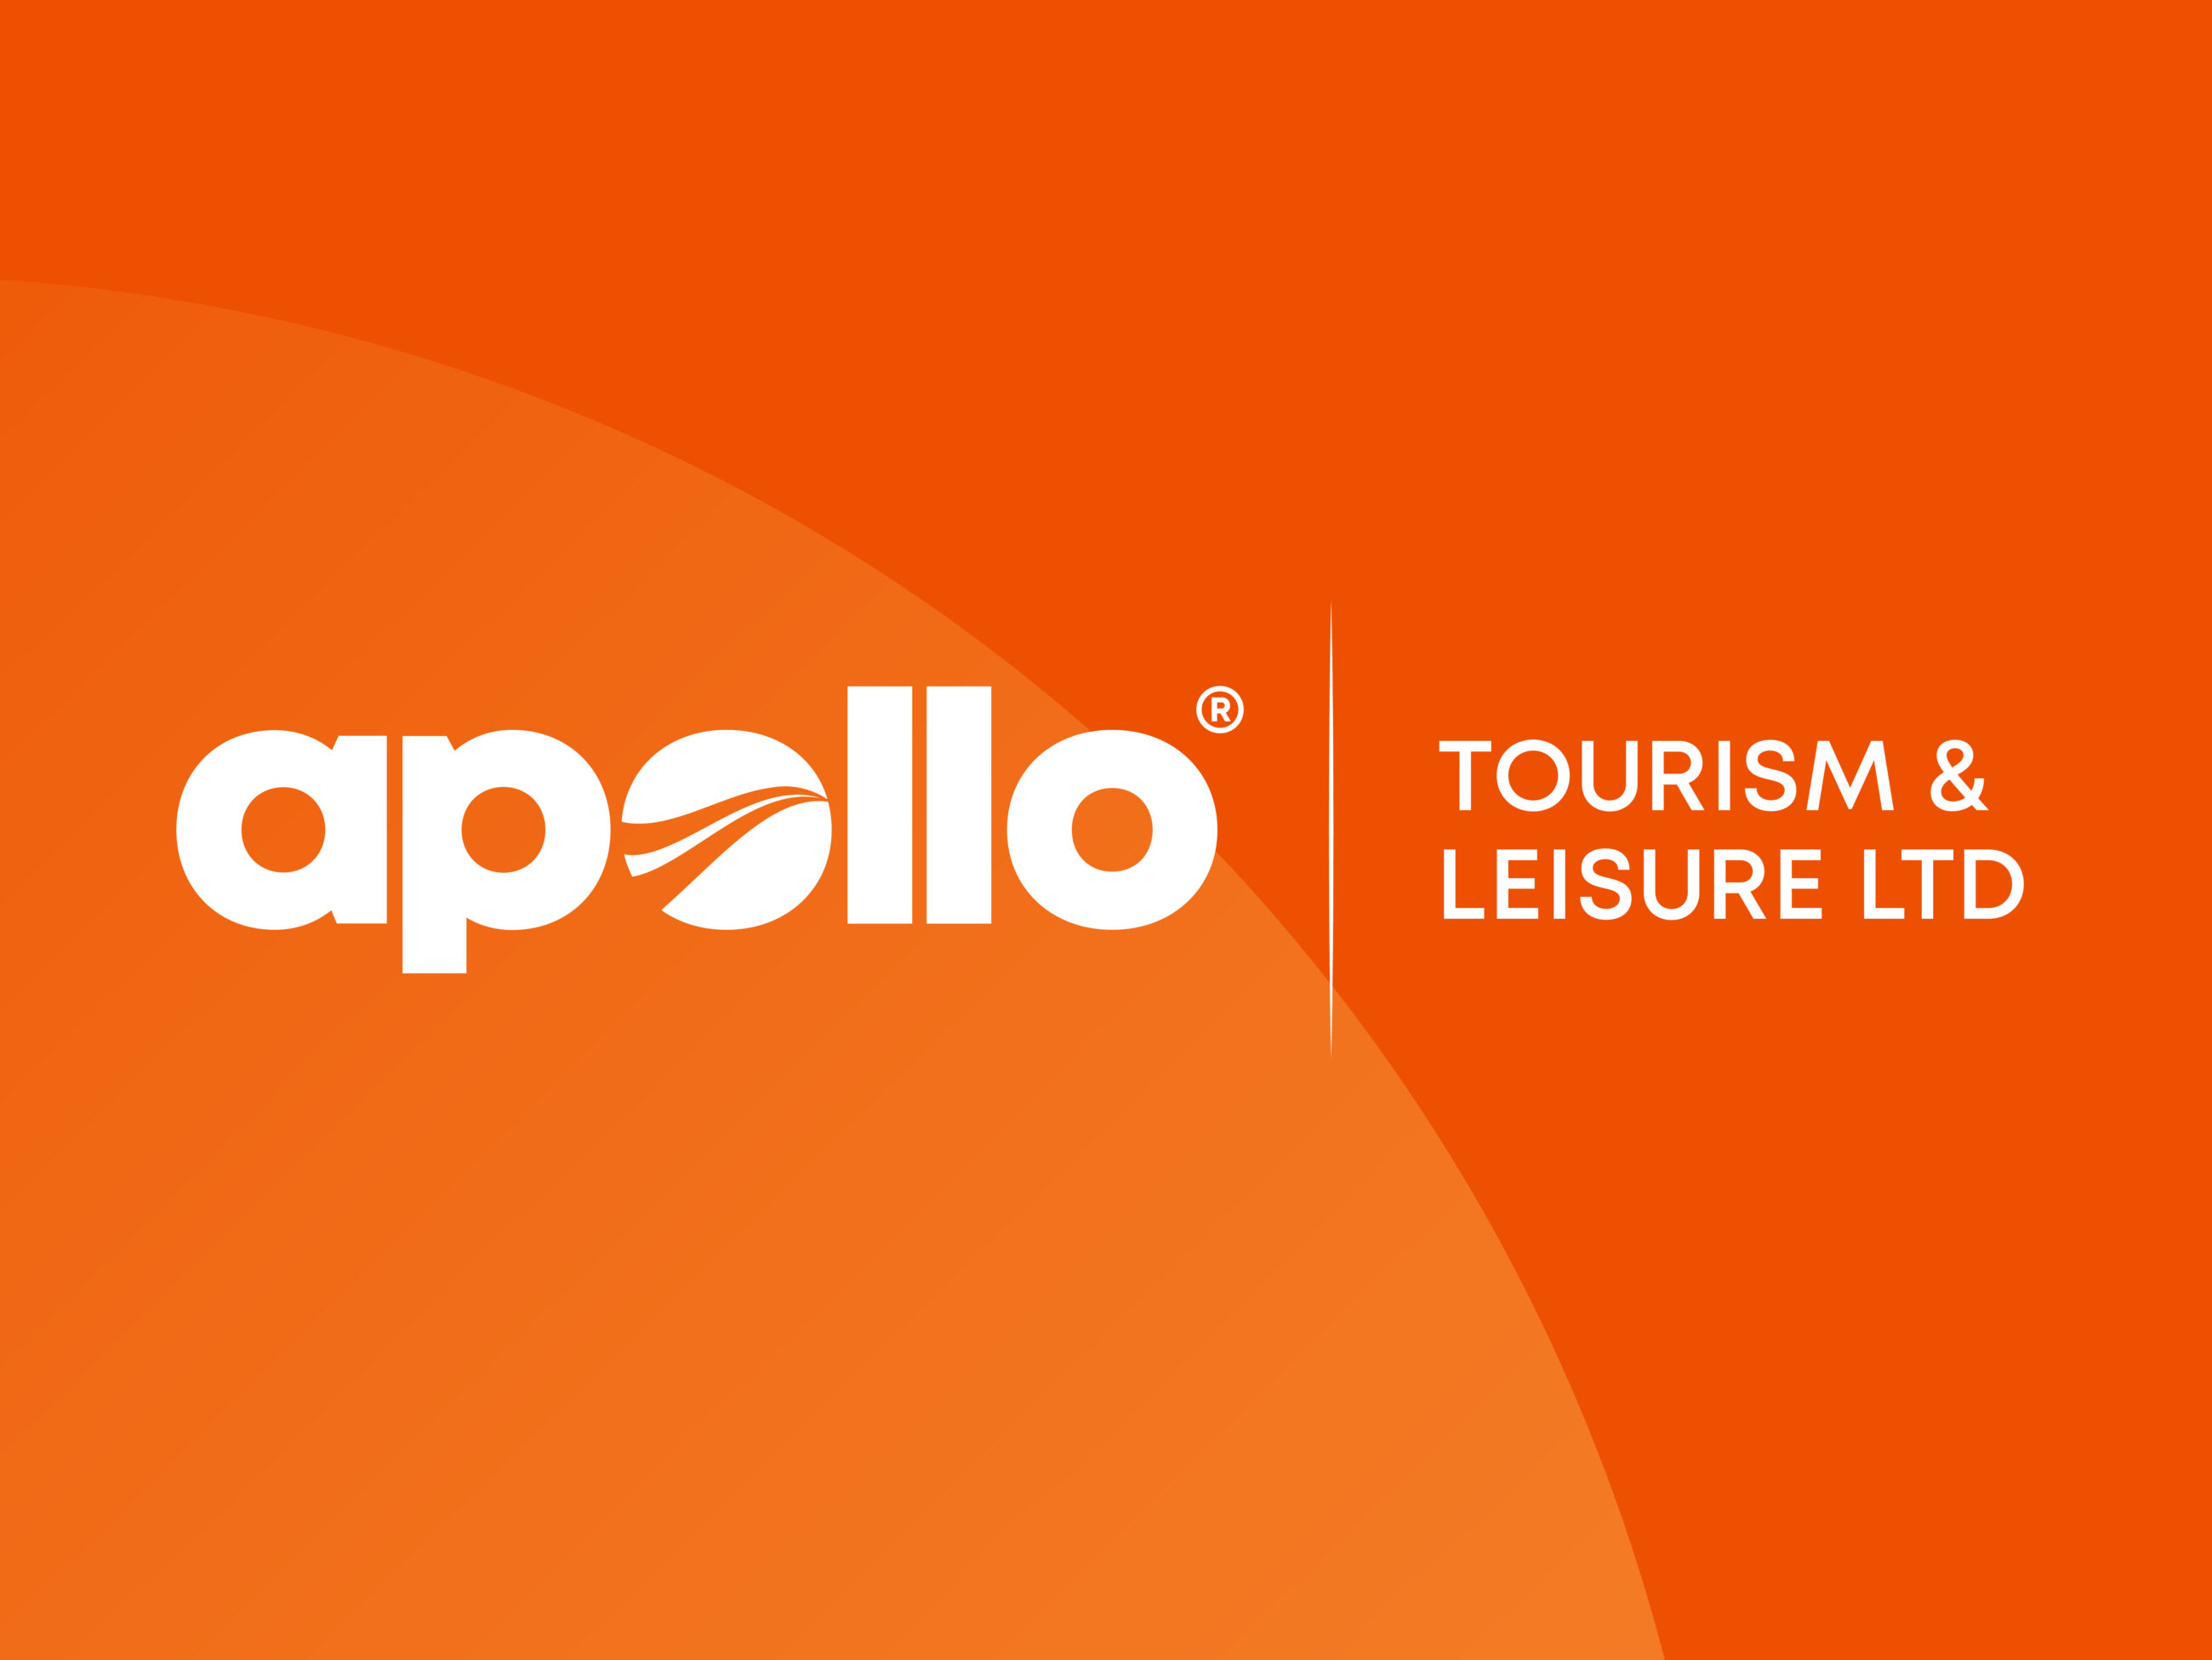 Apollo - Tourism & Leisure LTD logo